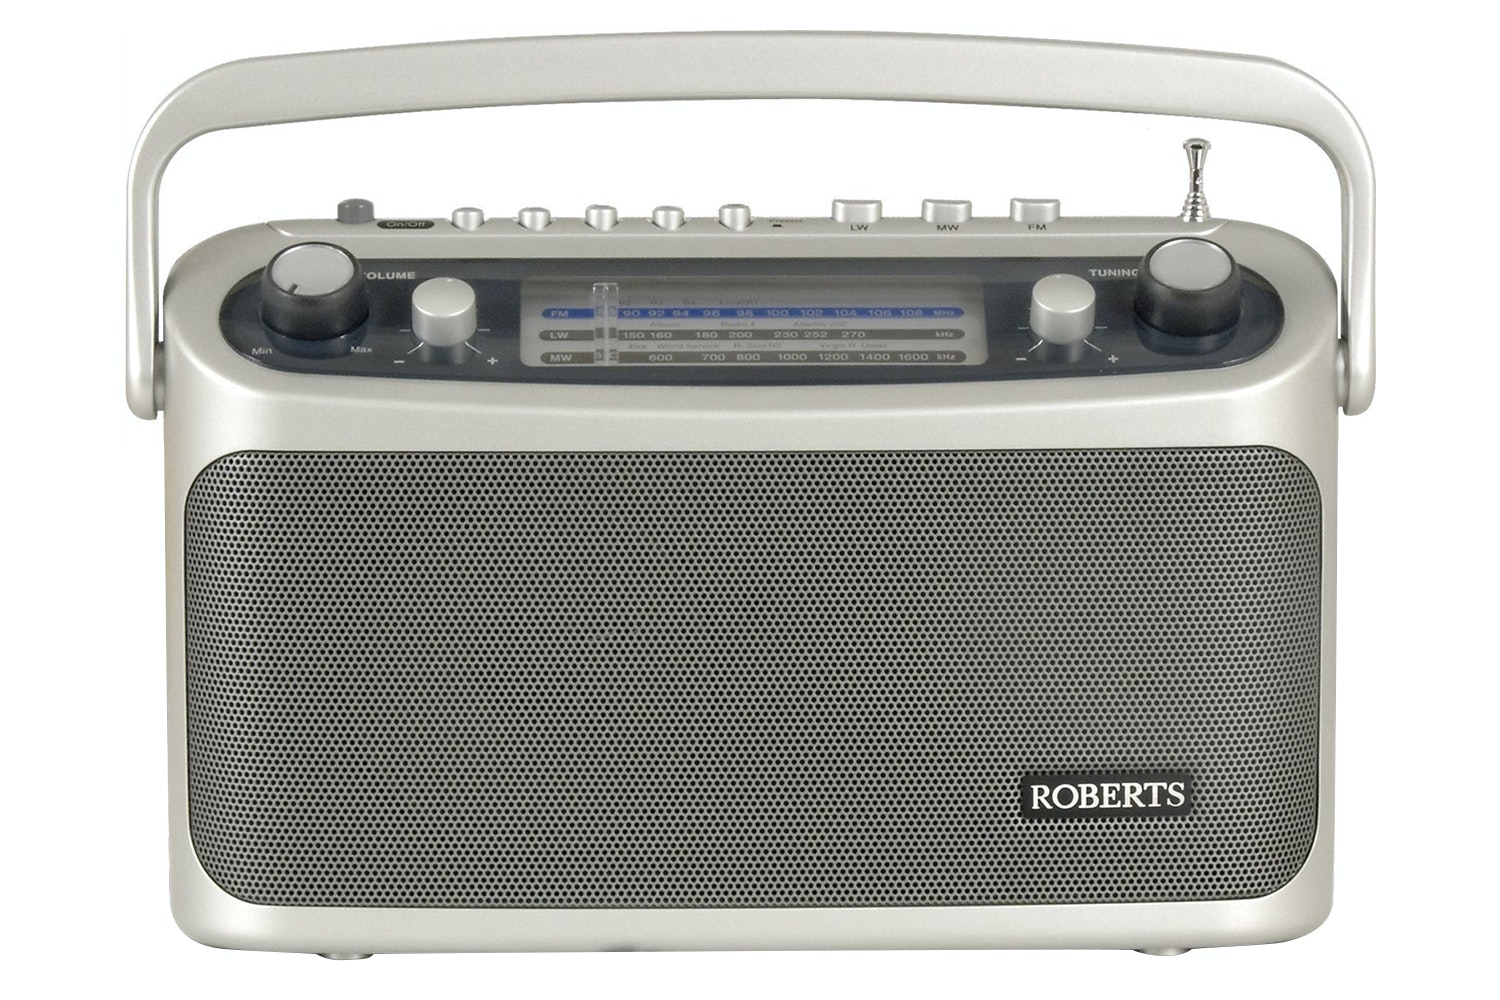 Roberts Classic 928 Portable Analogue Radio | Silver